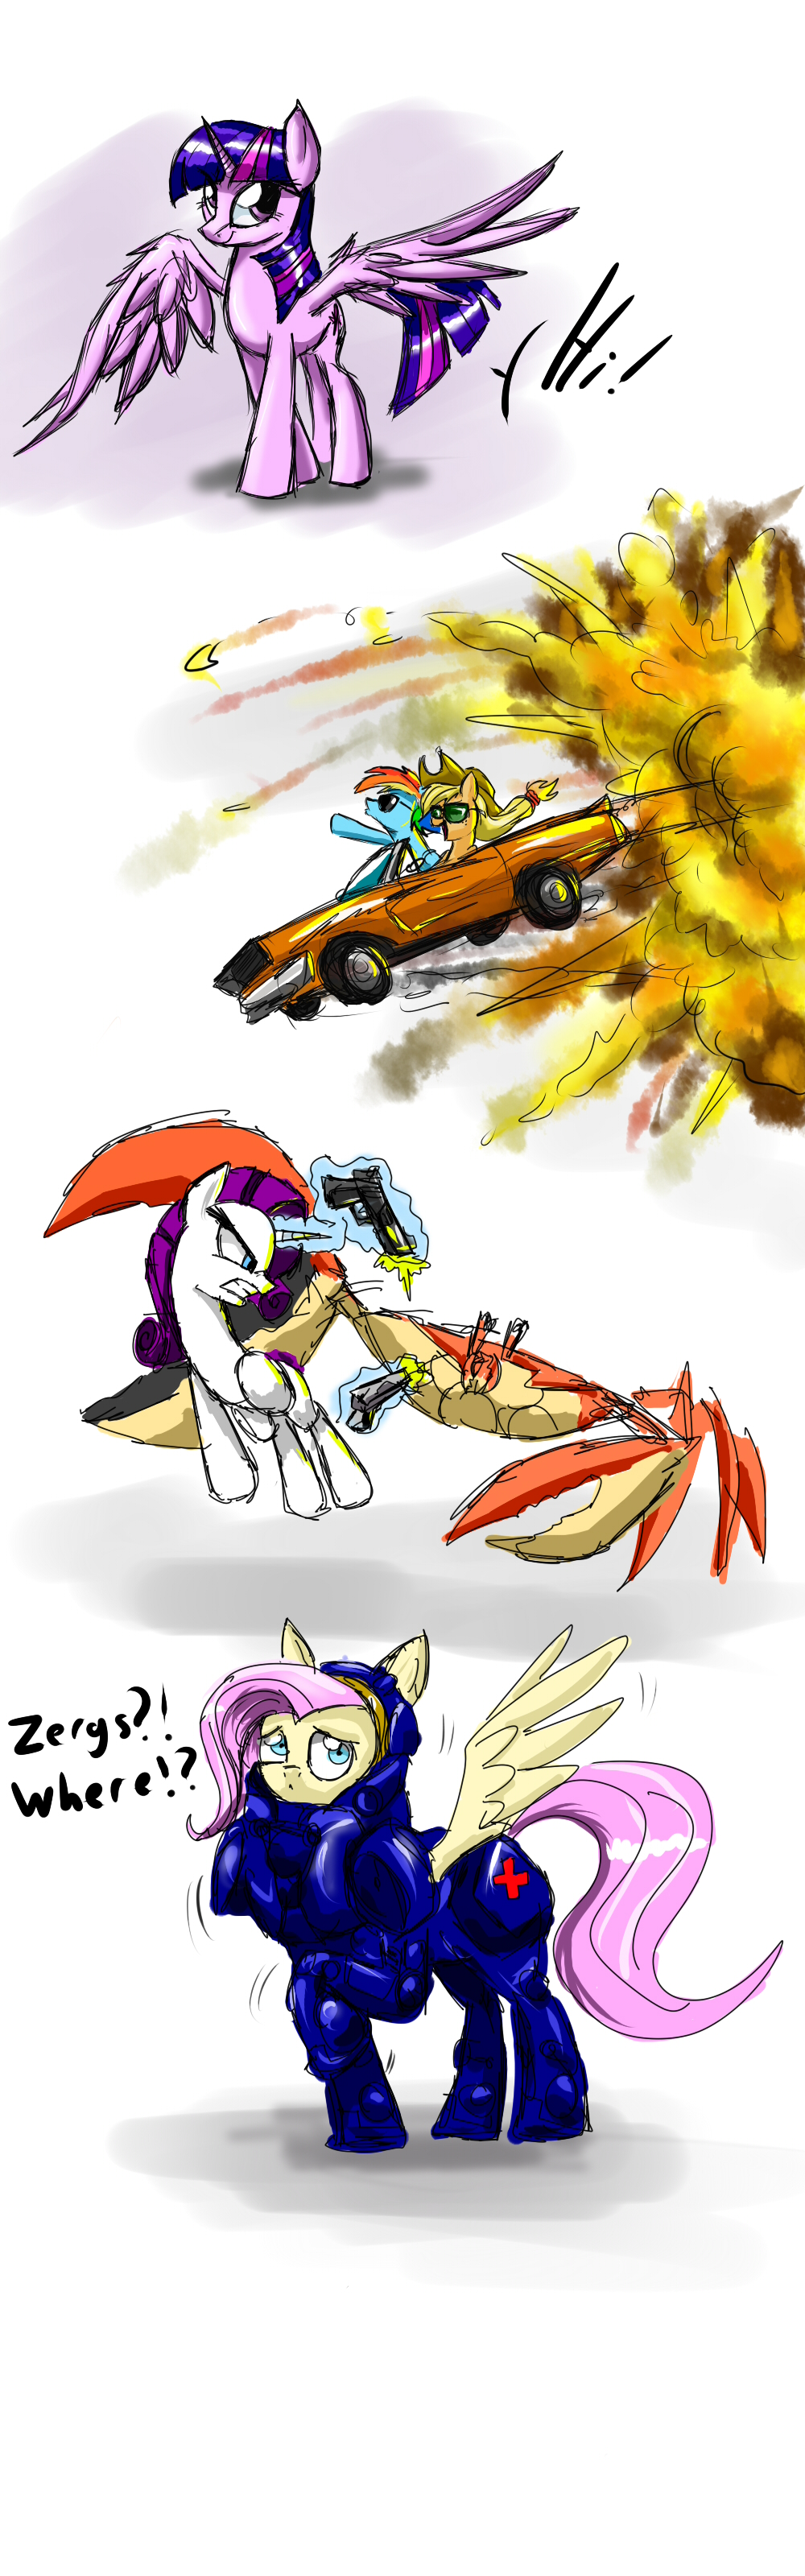 MLP skecth dump by metalfoxxx